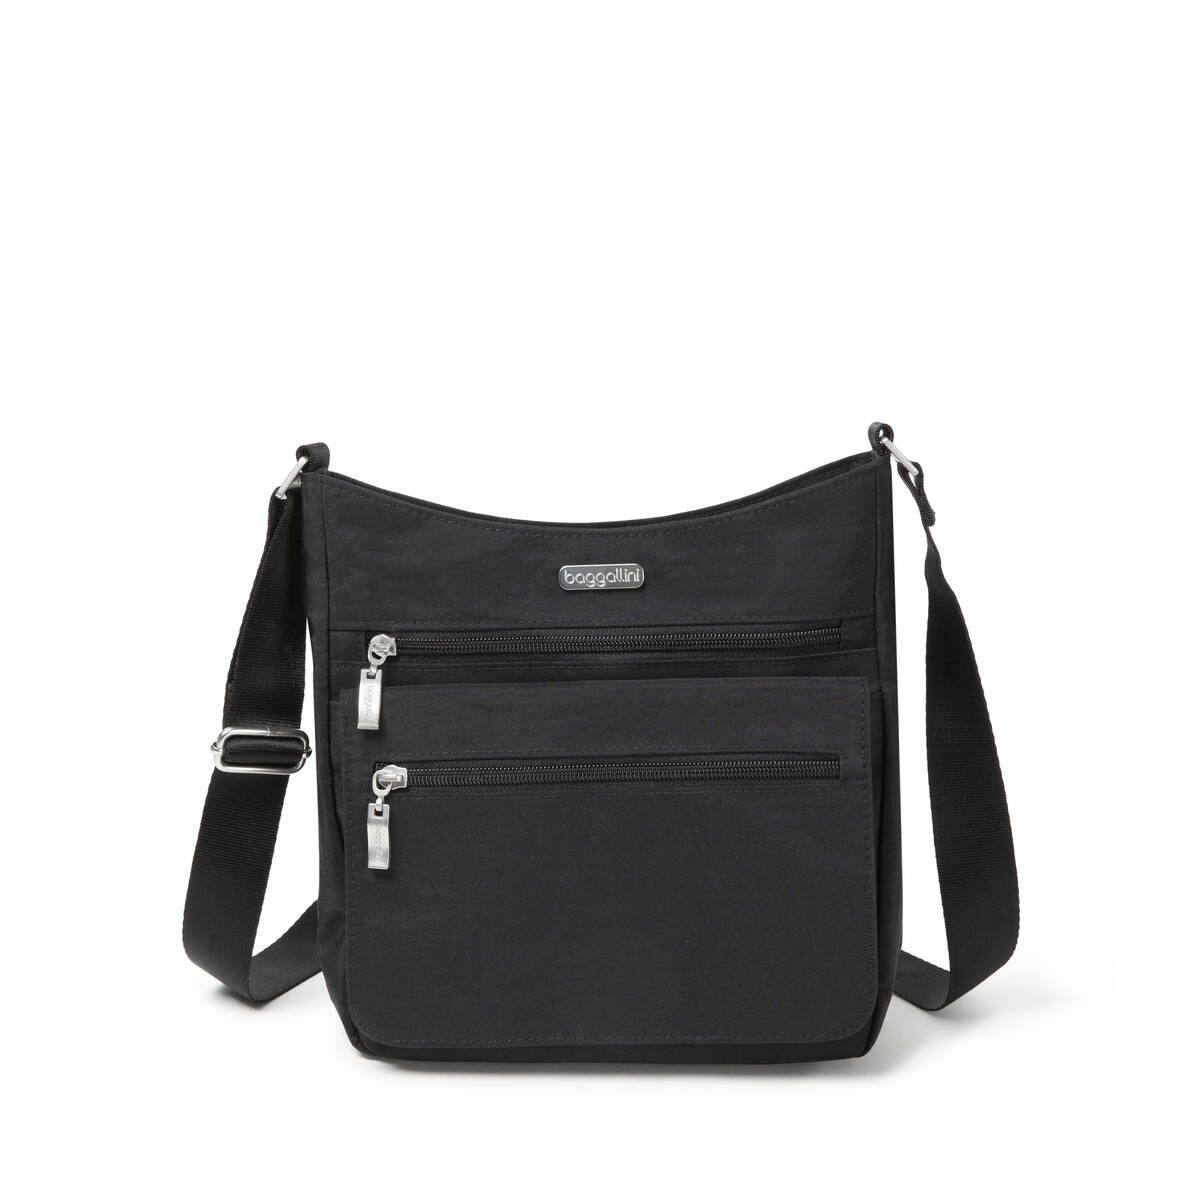 Top Zip Flap Crossbody With Rfid Wristlet